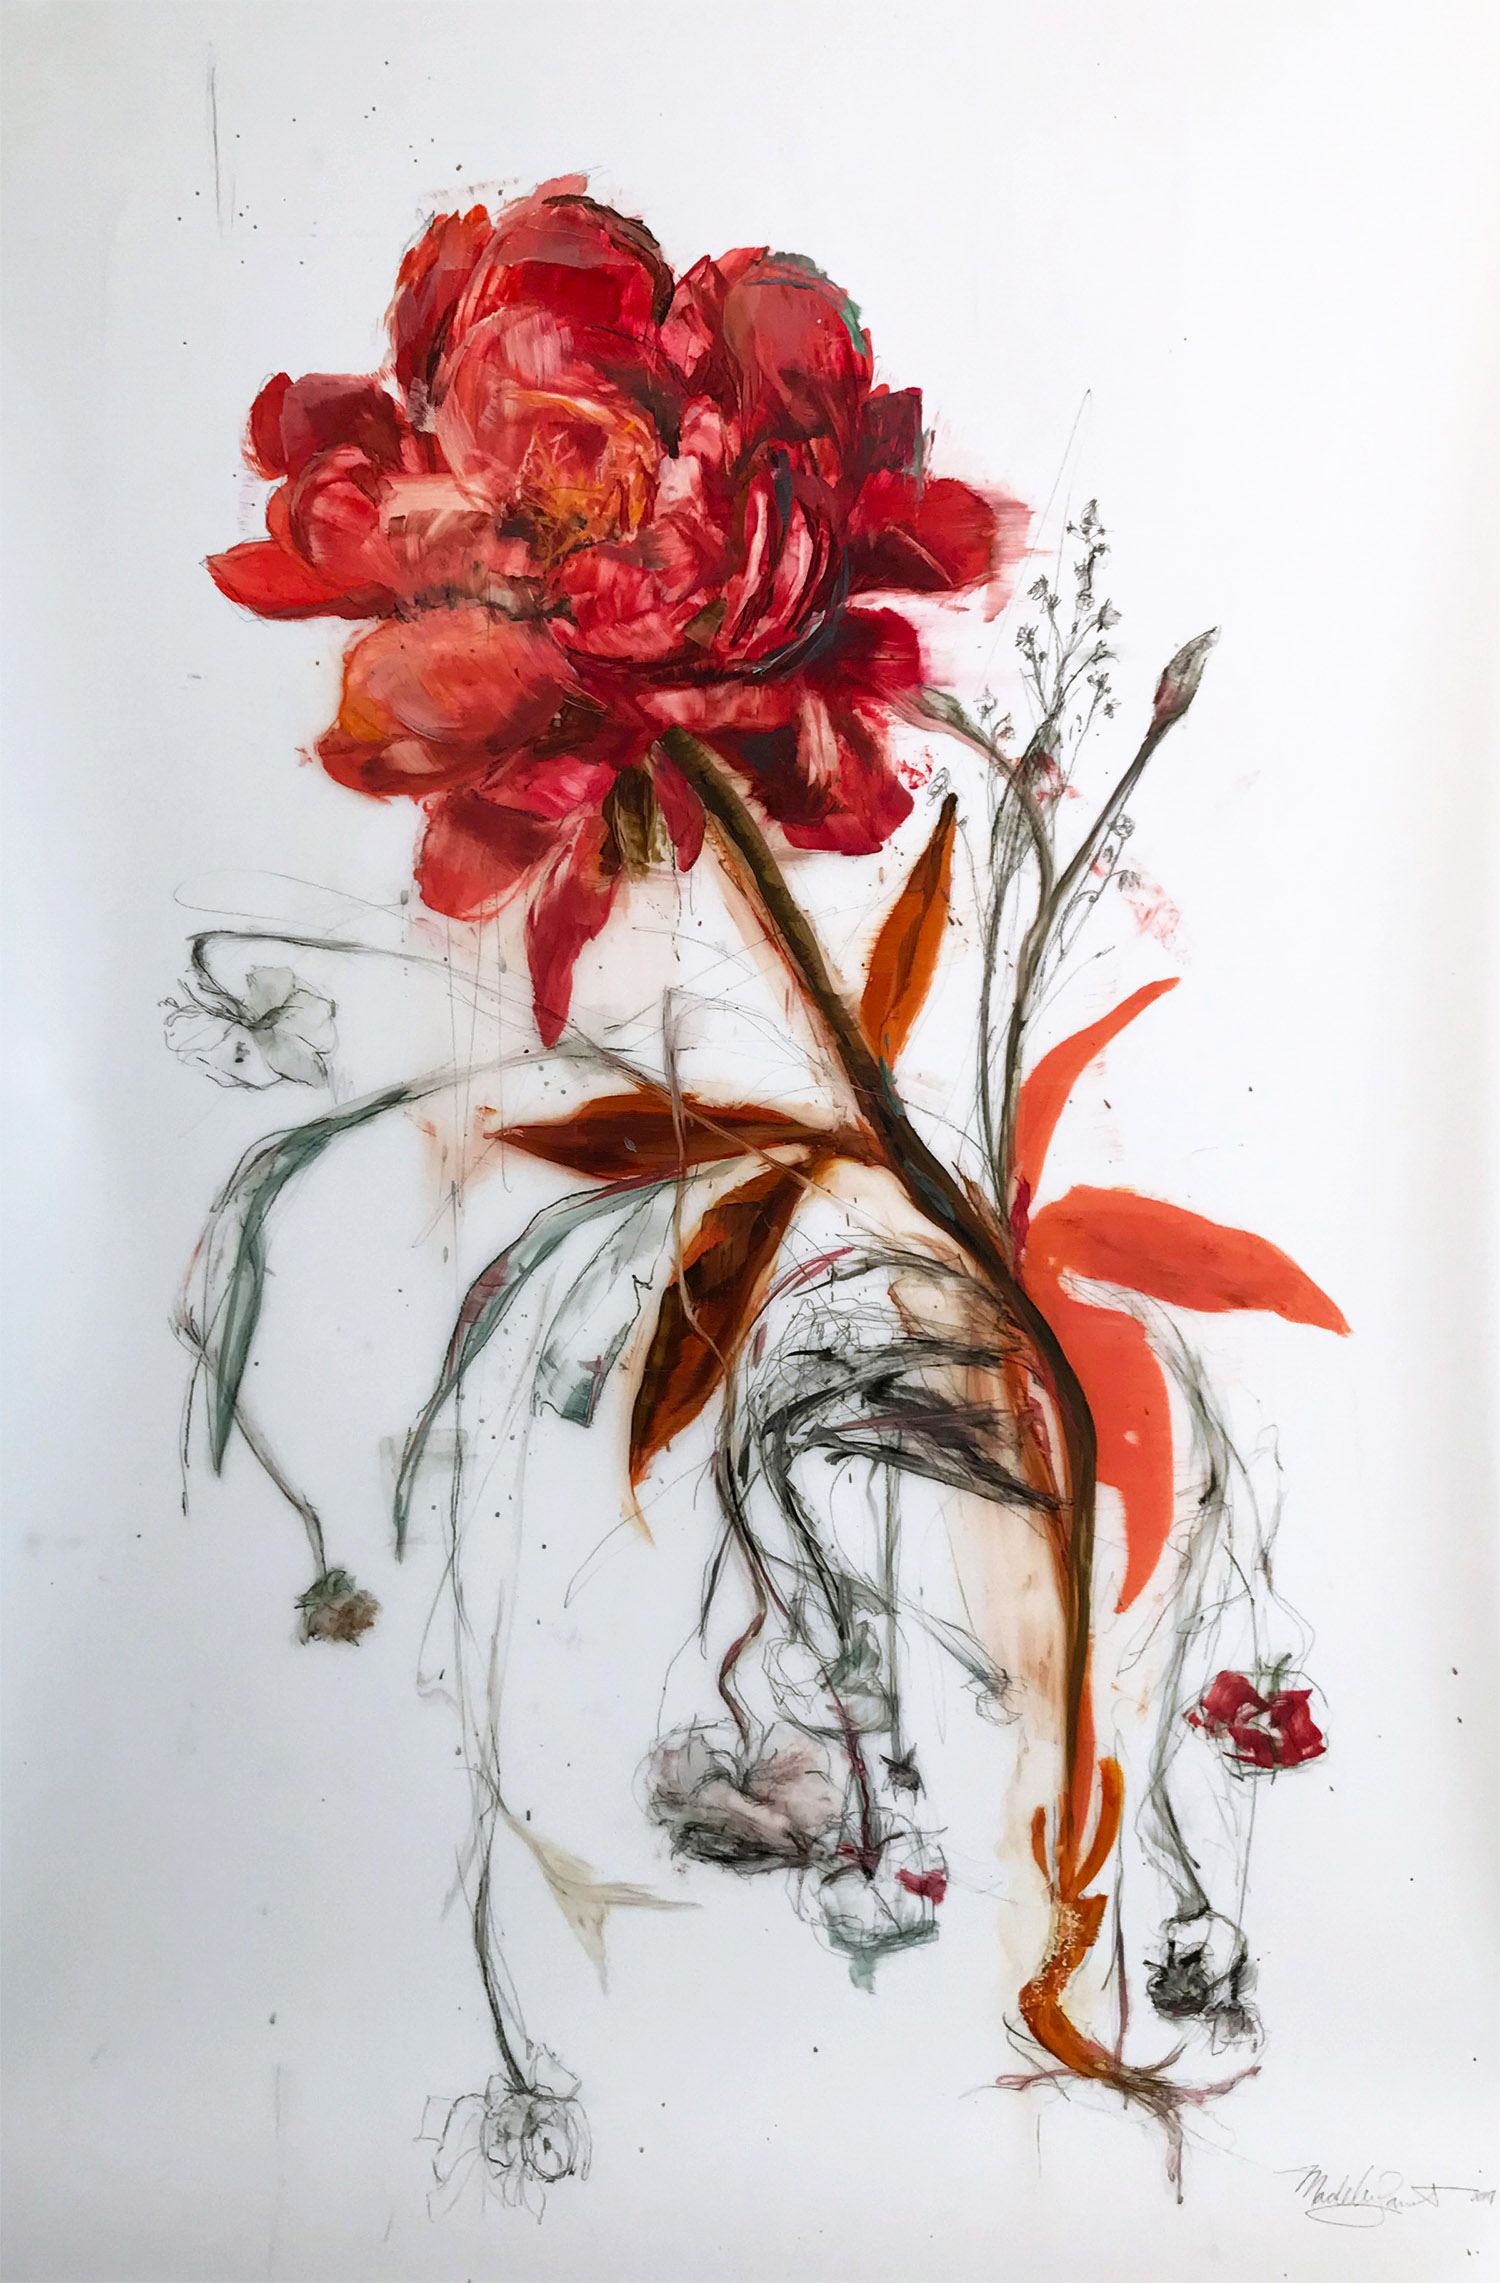 Madeleine Lamont, Coral Bloom with Sketch, oil on mylar, 54 x 36 in.